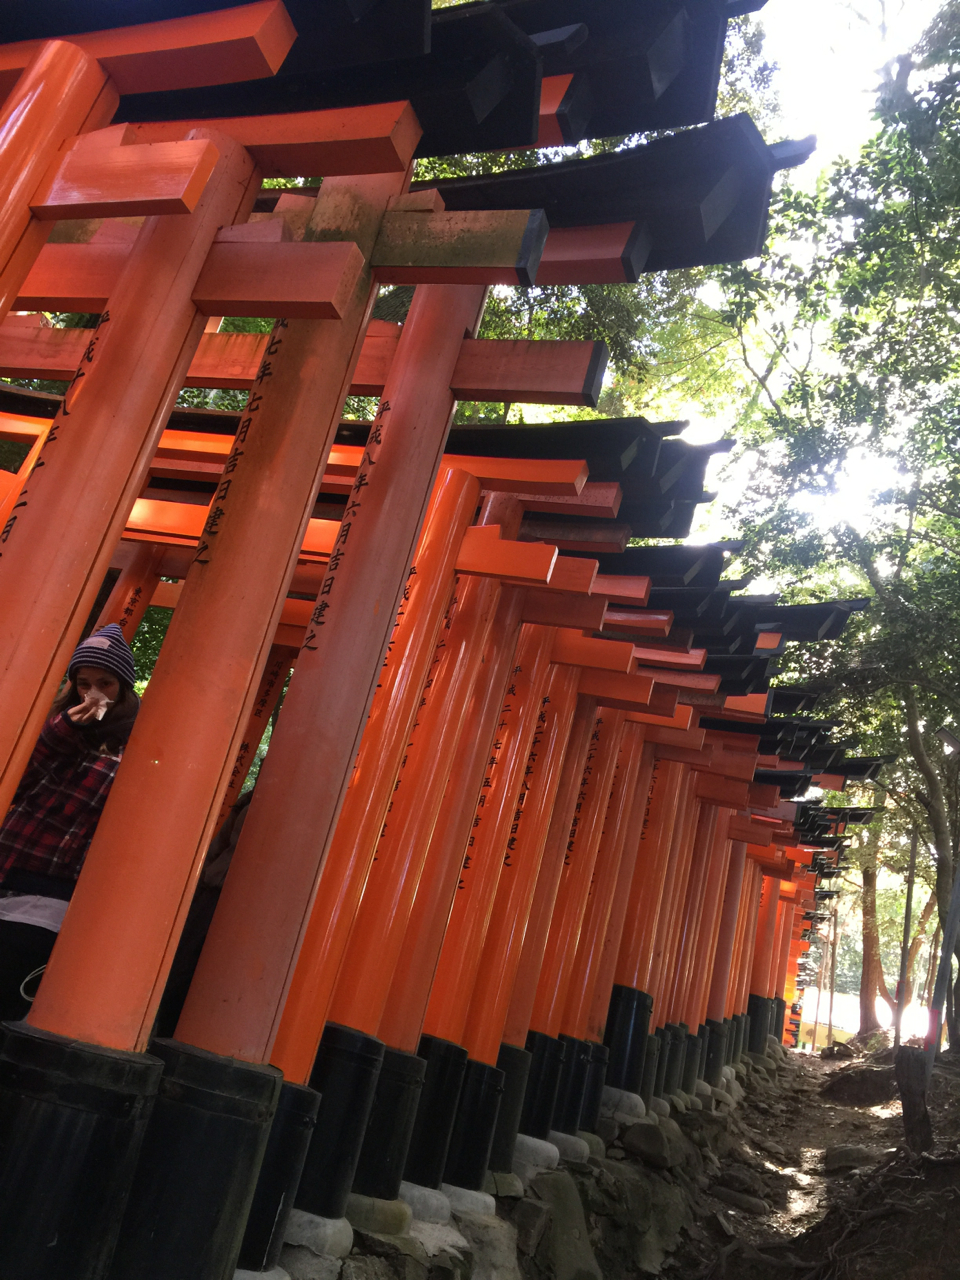 The torii gates from outside of the path